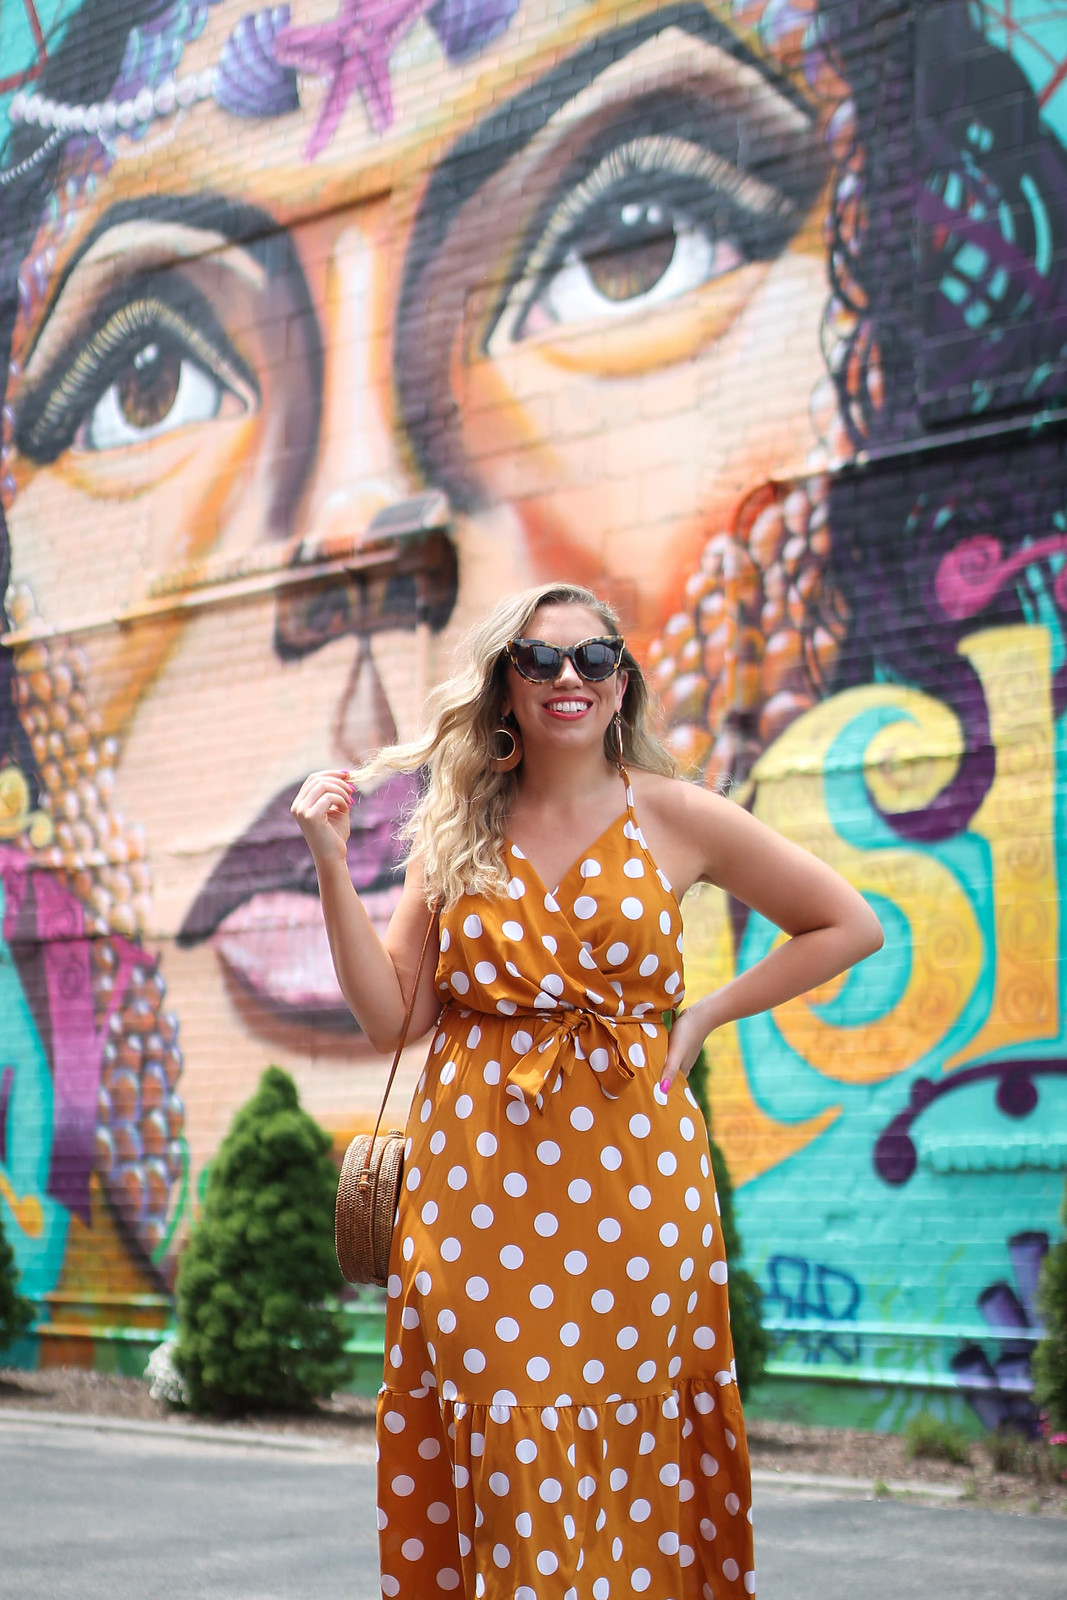 25 Polka Dot Dresses Under $25 That Will Make You Reach for your Wallet | Shein Ginger Polka Dot Ruffle Hem Belted Cami Dress | Coney Island Brooklyn New York Photo Ideas